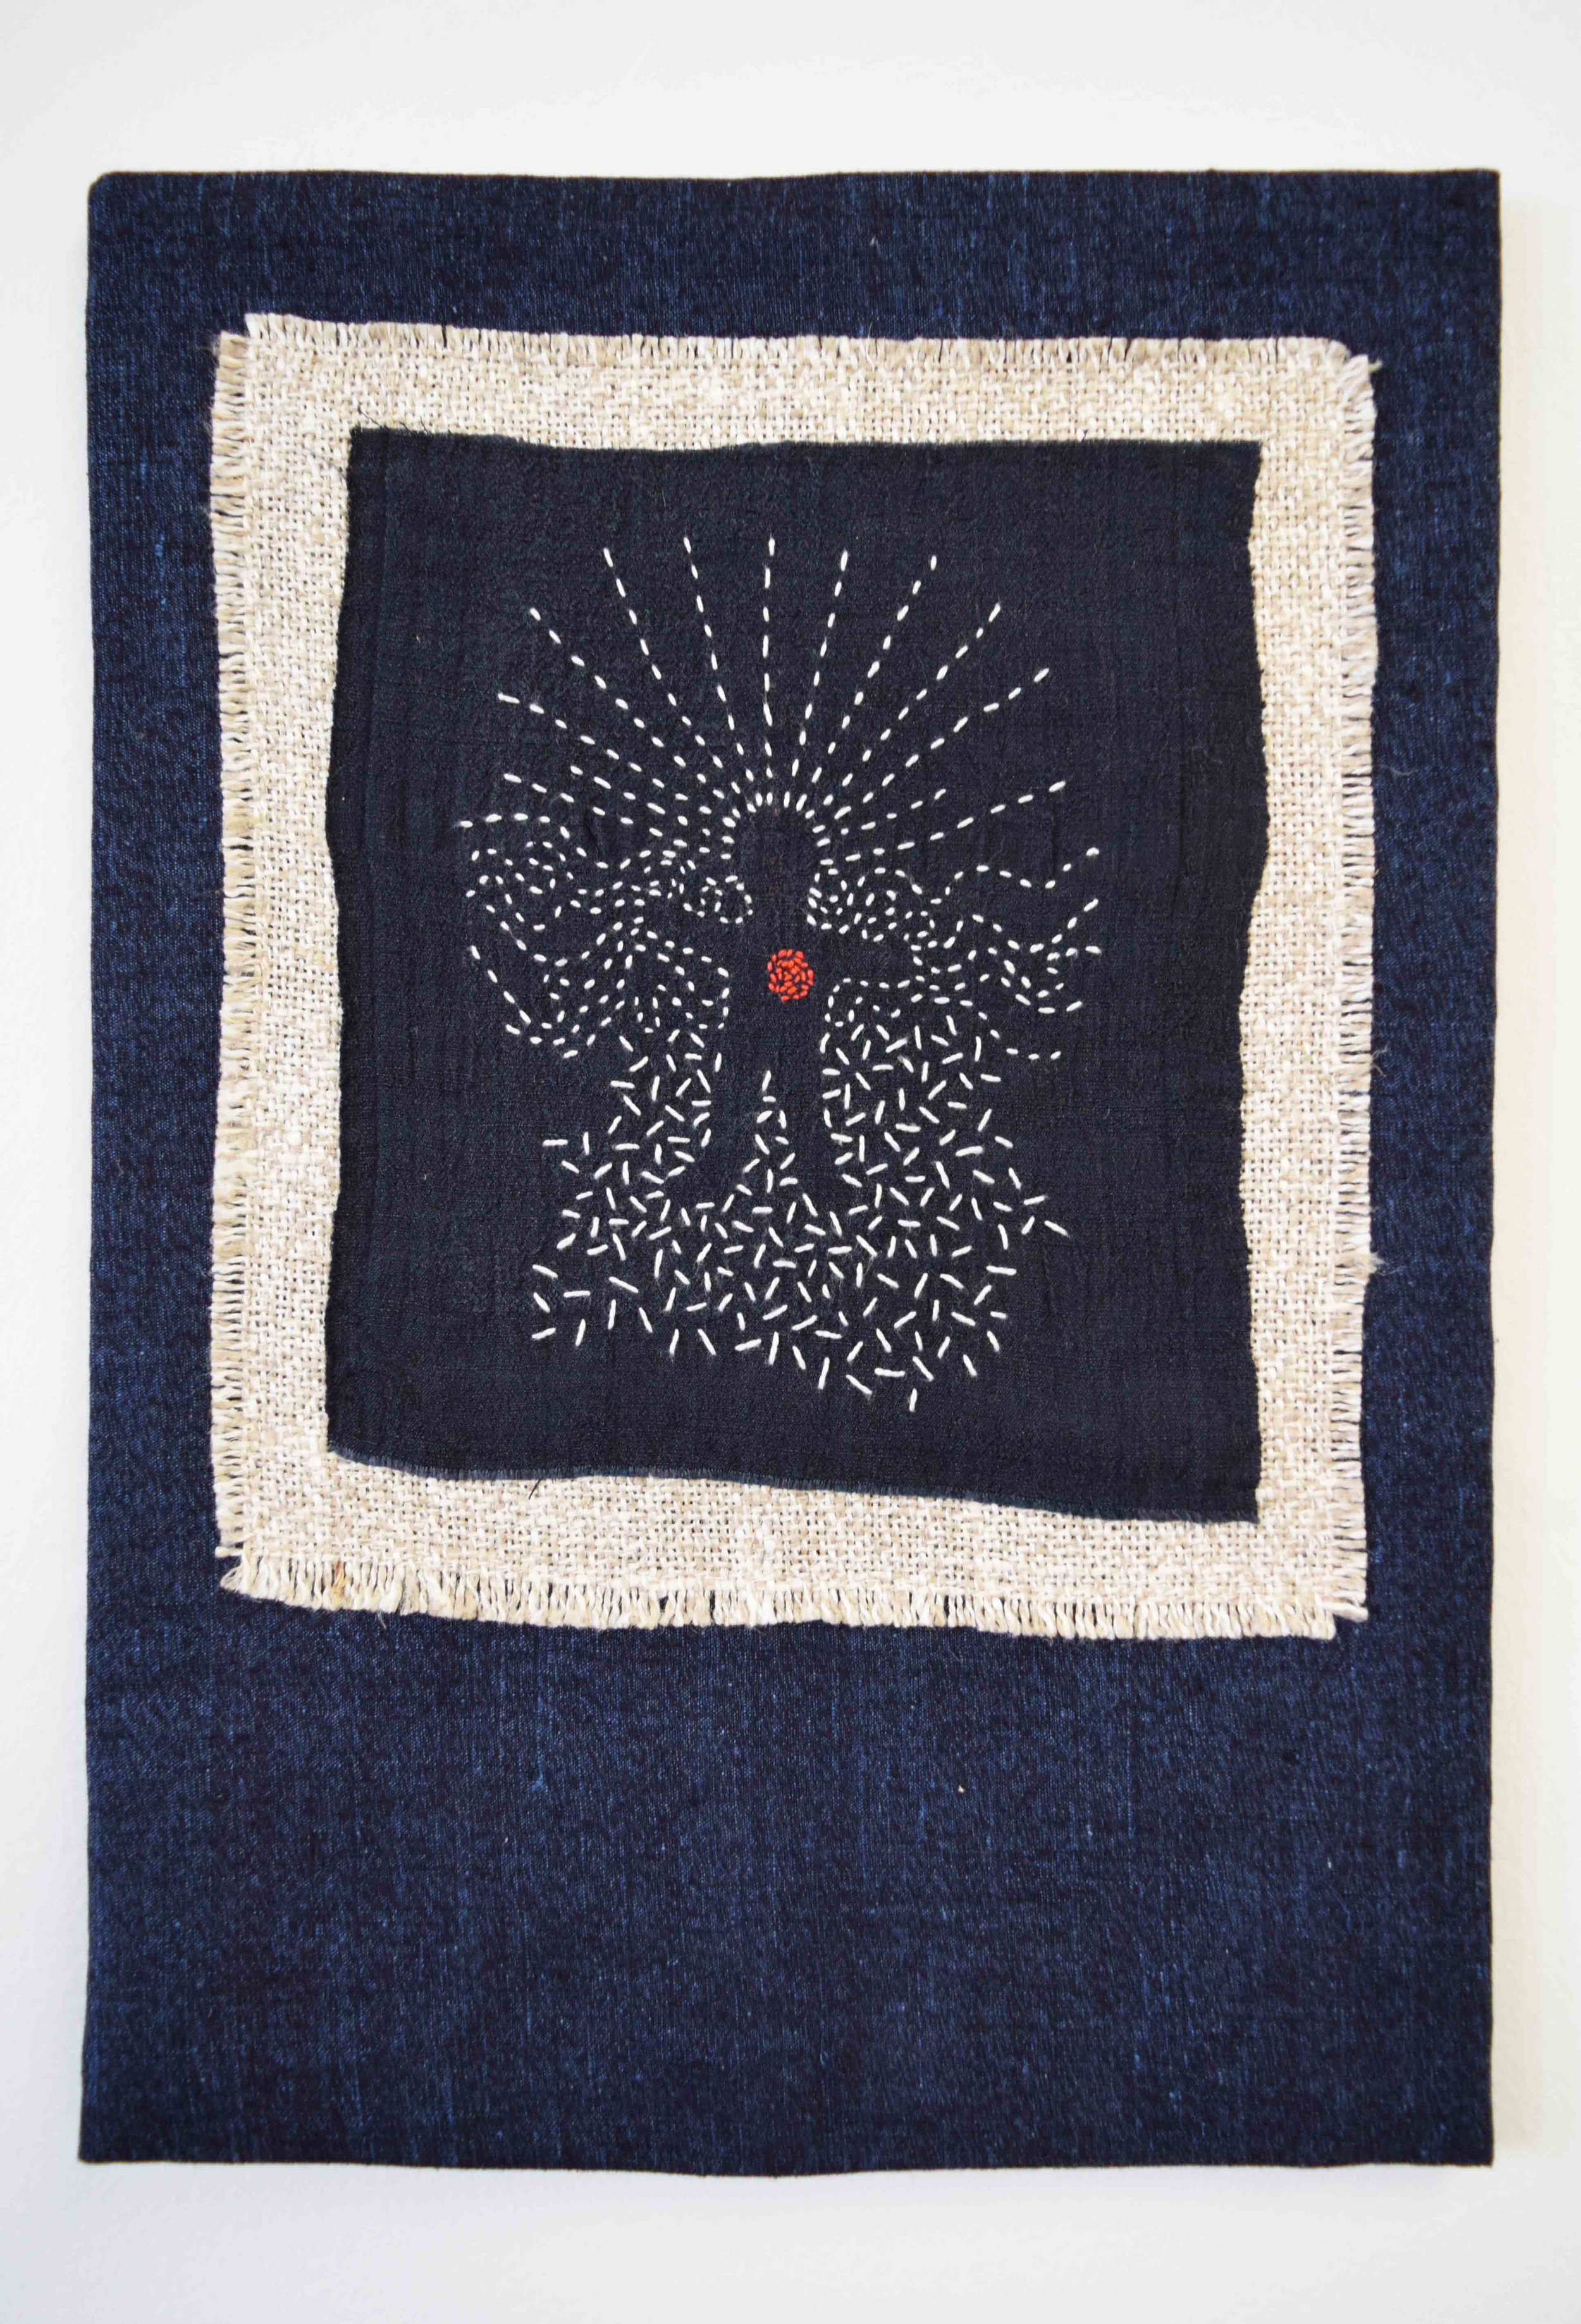 35. Anne Williams , Untitled,  2018, hand stitched linen and silk, 34.5 x 25.5 cm $130